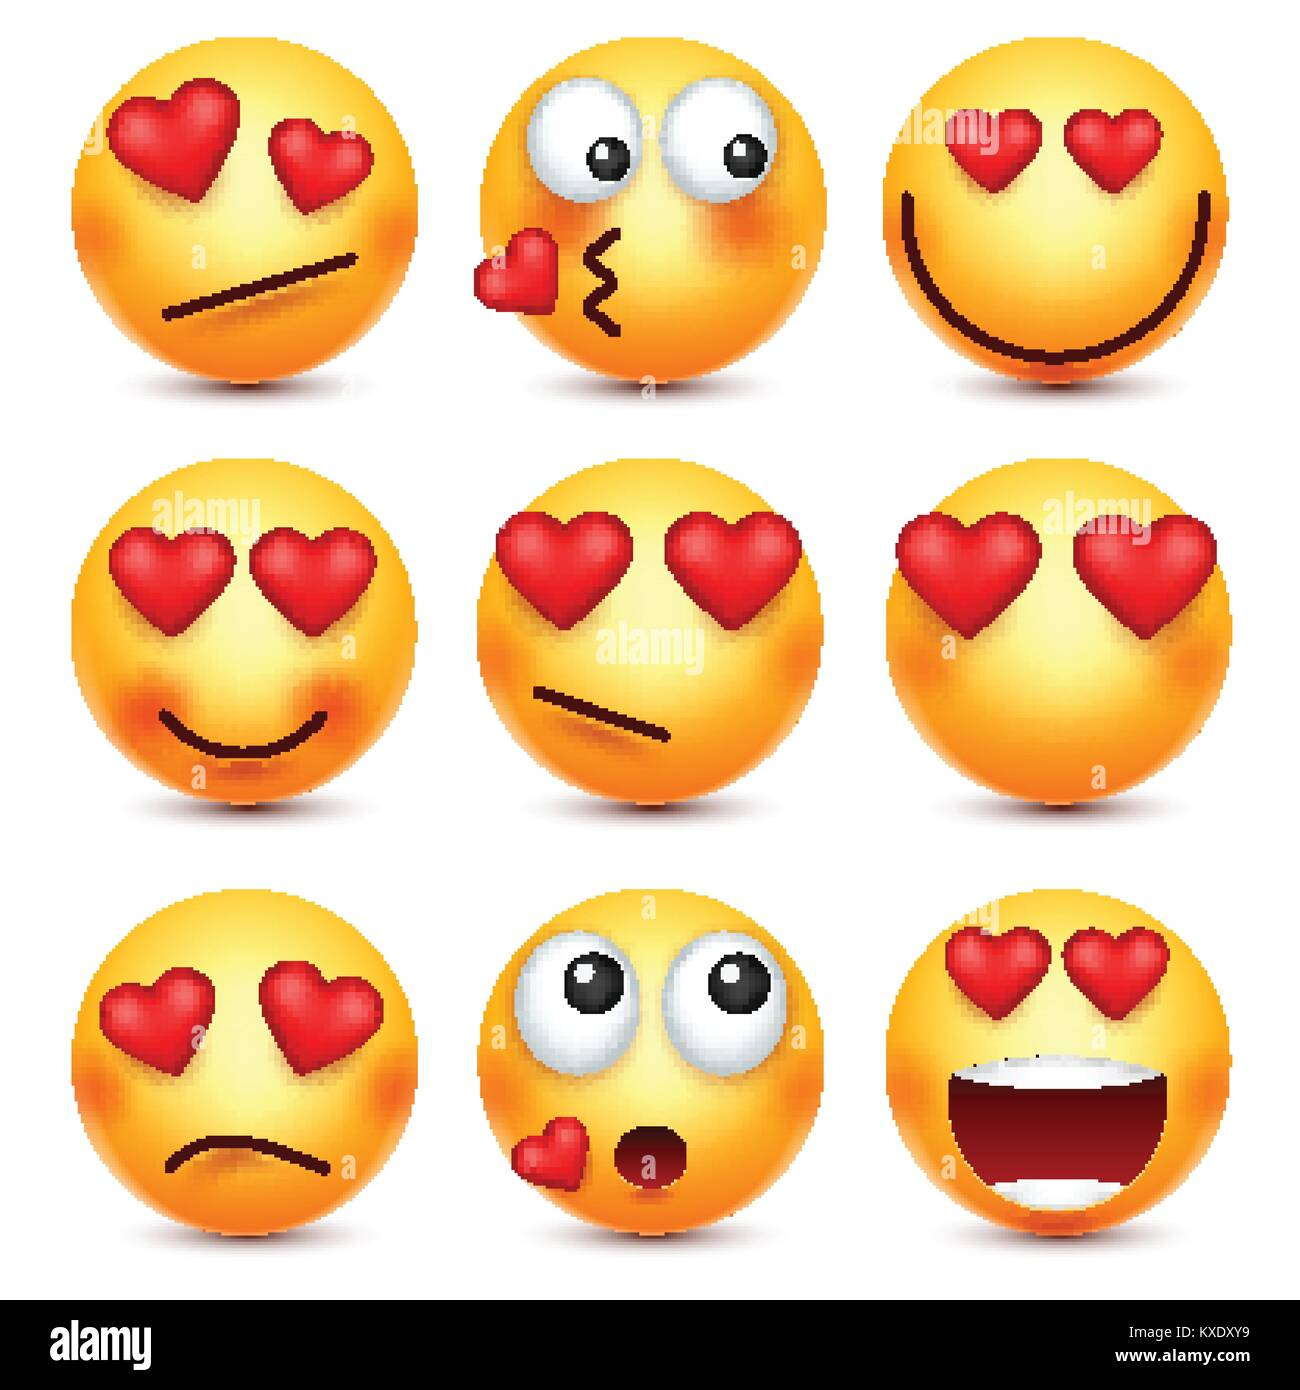 Valentines Day Smiley Emoji With Heart Love February 14 Stock